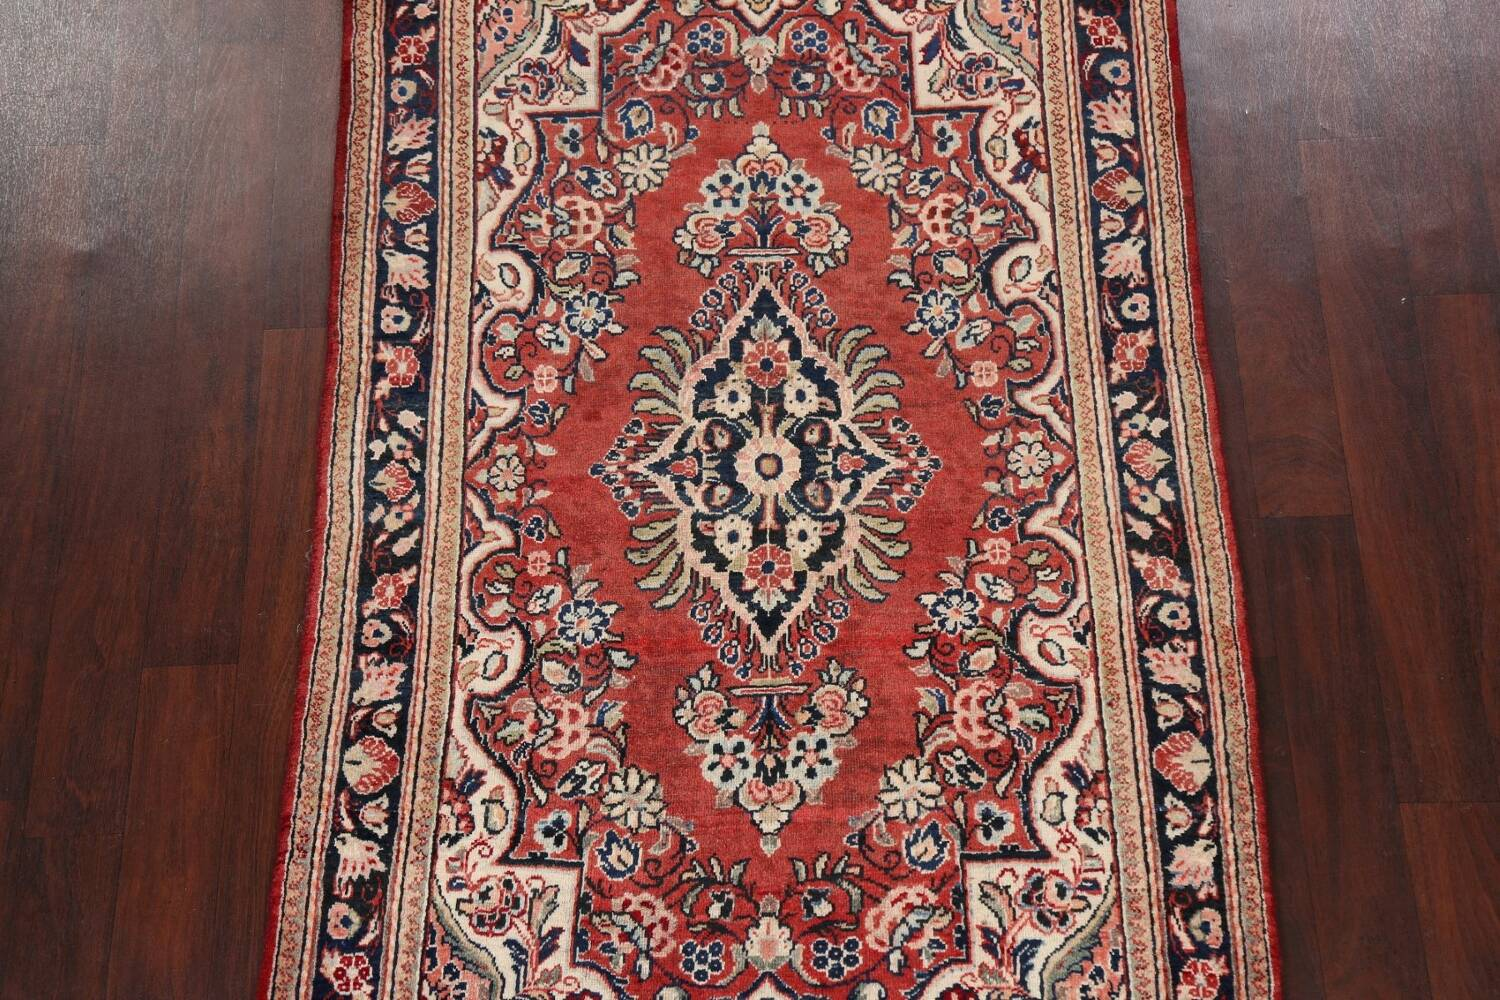 Floral Mahal Persian Area Rug 4x7 image 3